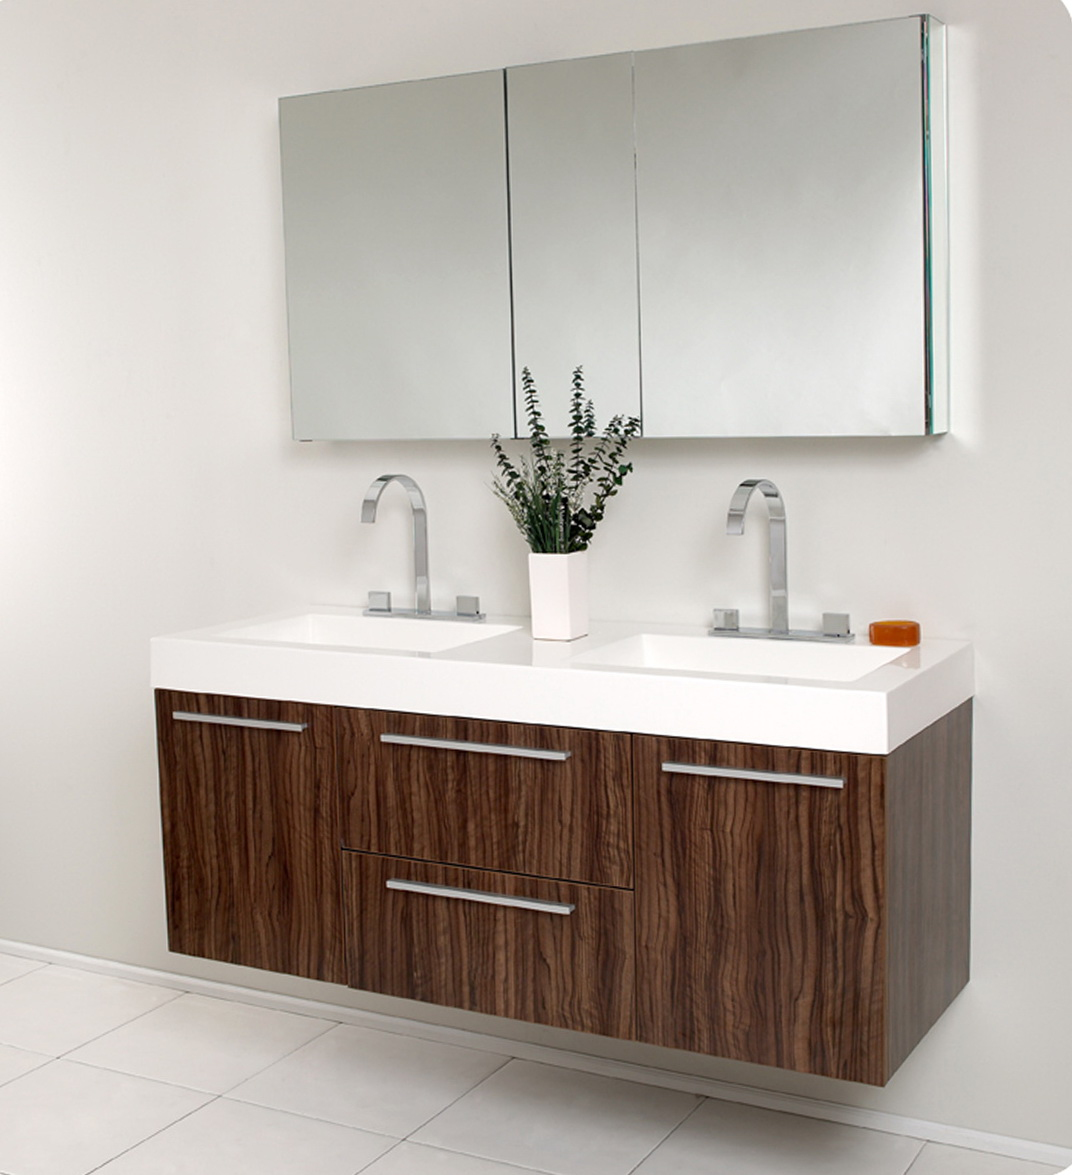 54 Inch Double Sink Bathroom Vanity